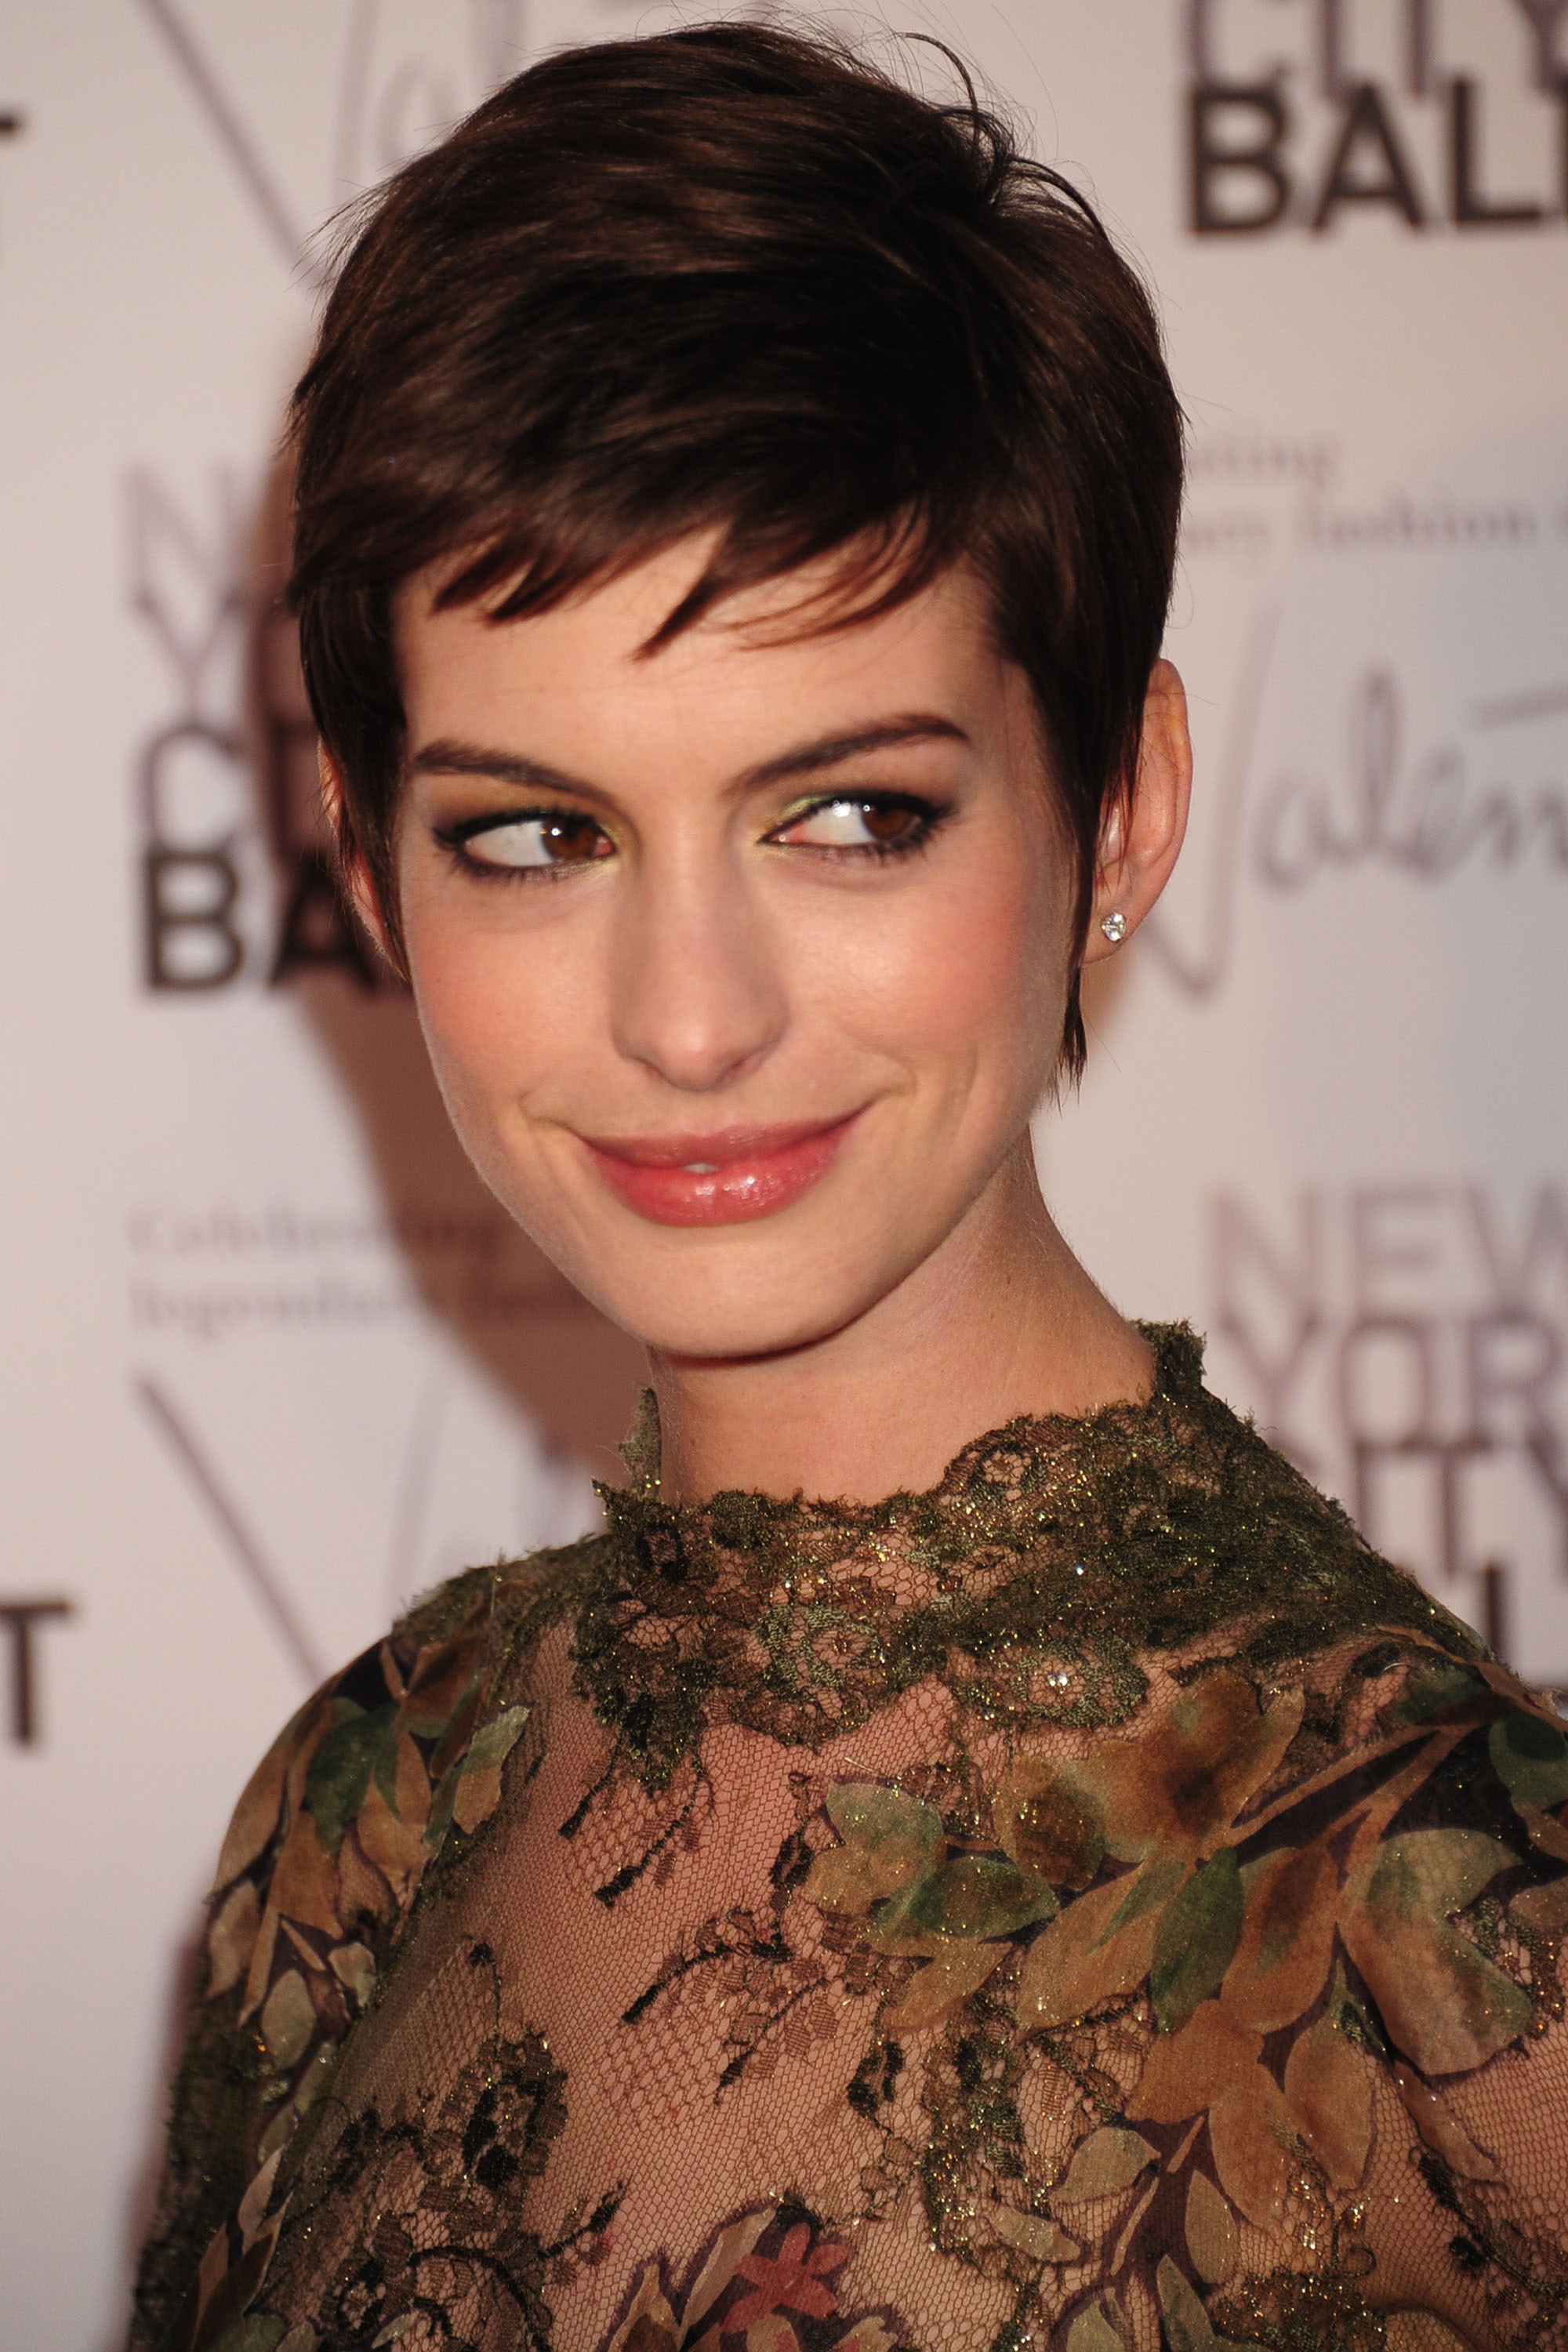 Anne Hathaway Very Short Hairstyle